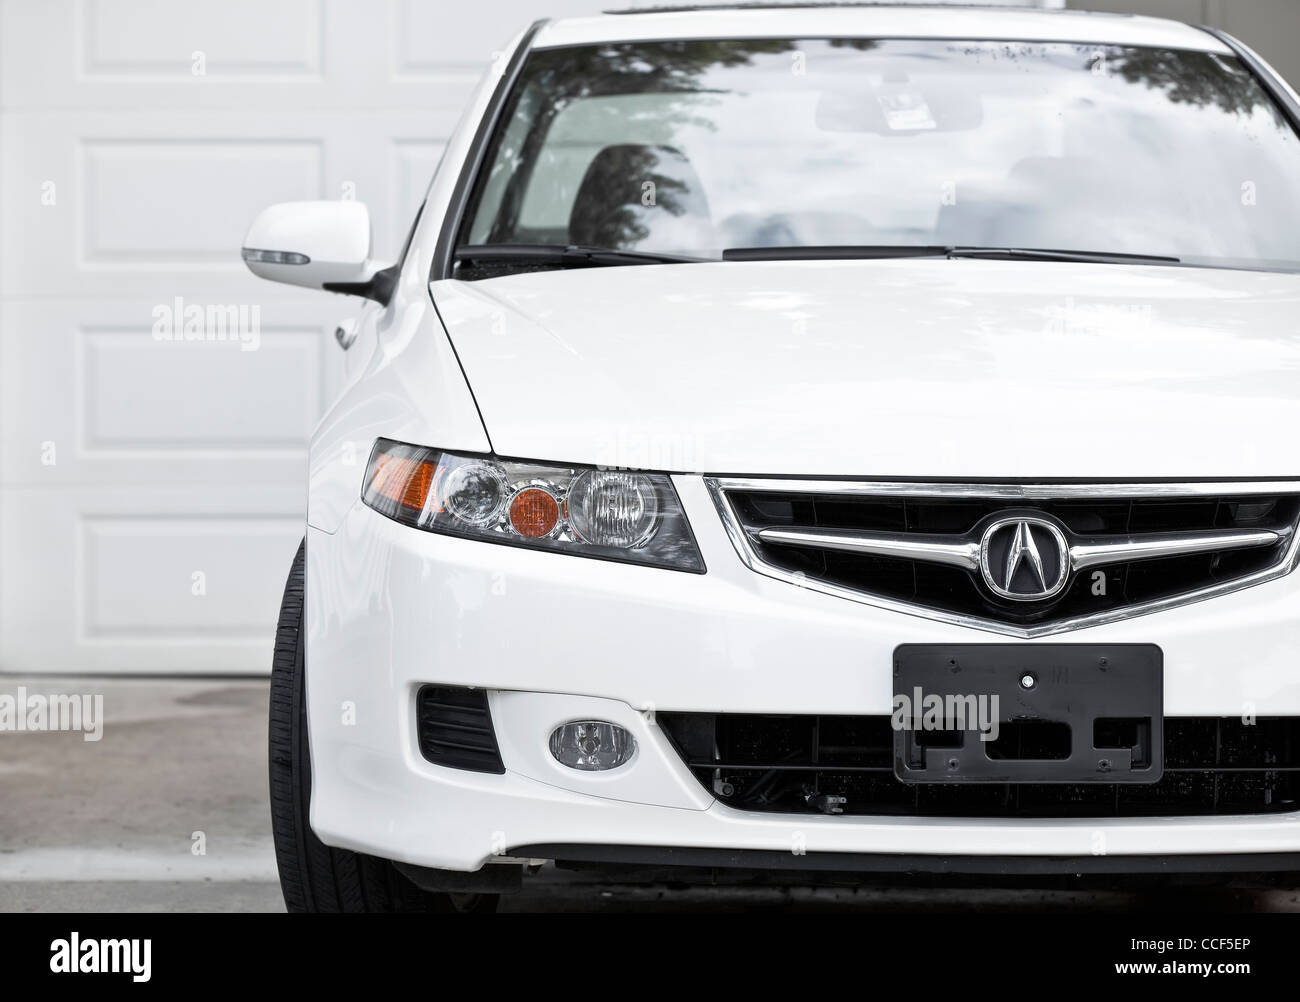 Acura Tsx sports sedan car, parked in driveway - Stock Image